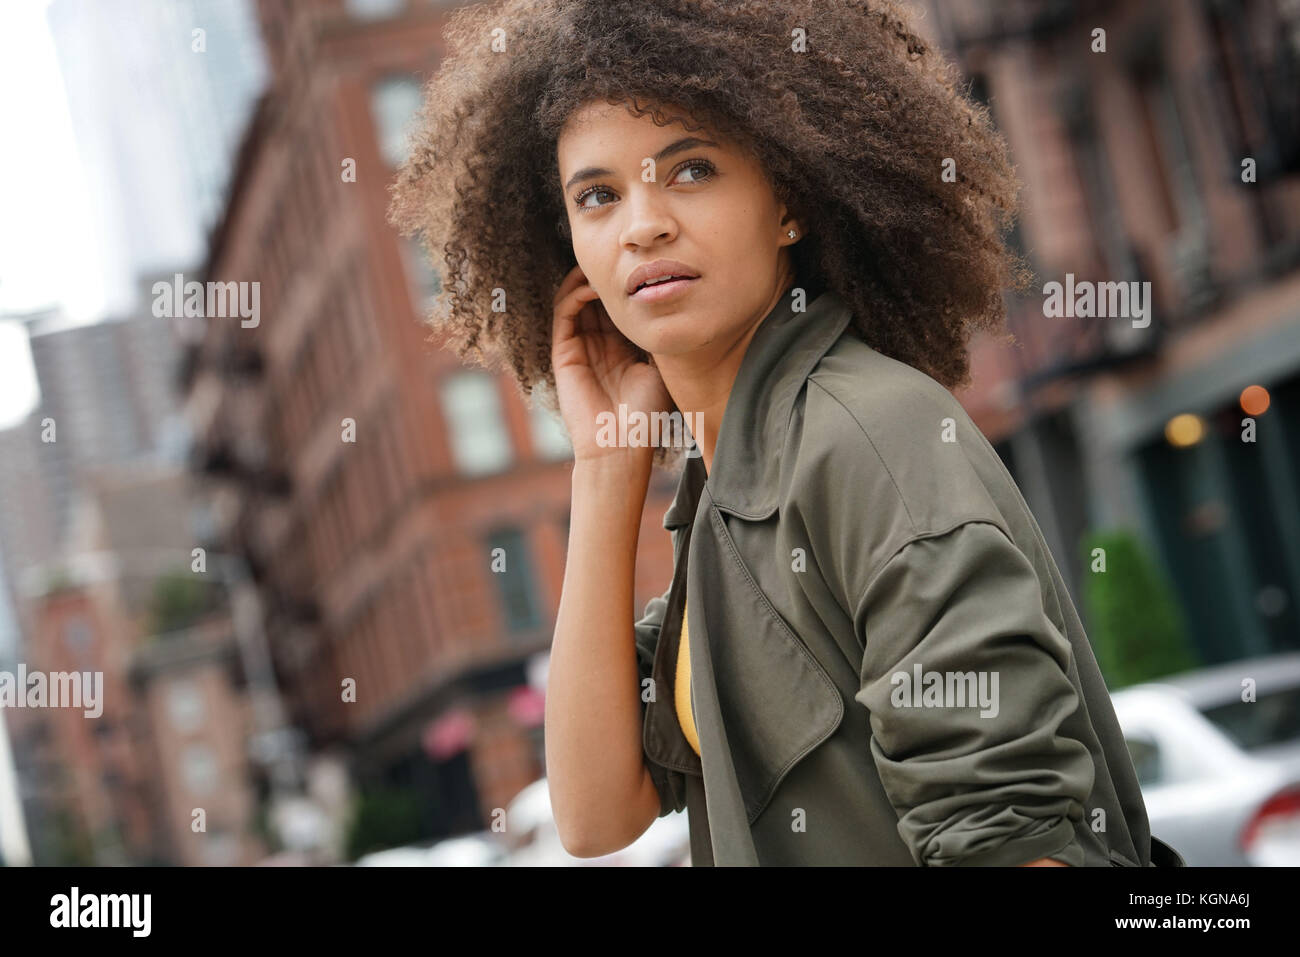 Fancy city girl crossing the street, New York city - Stock Image